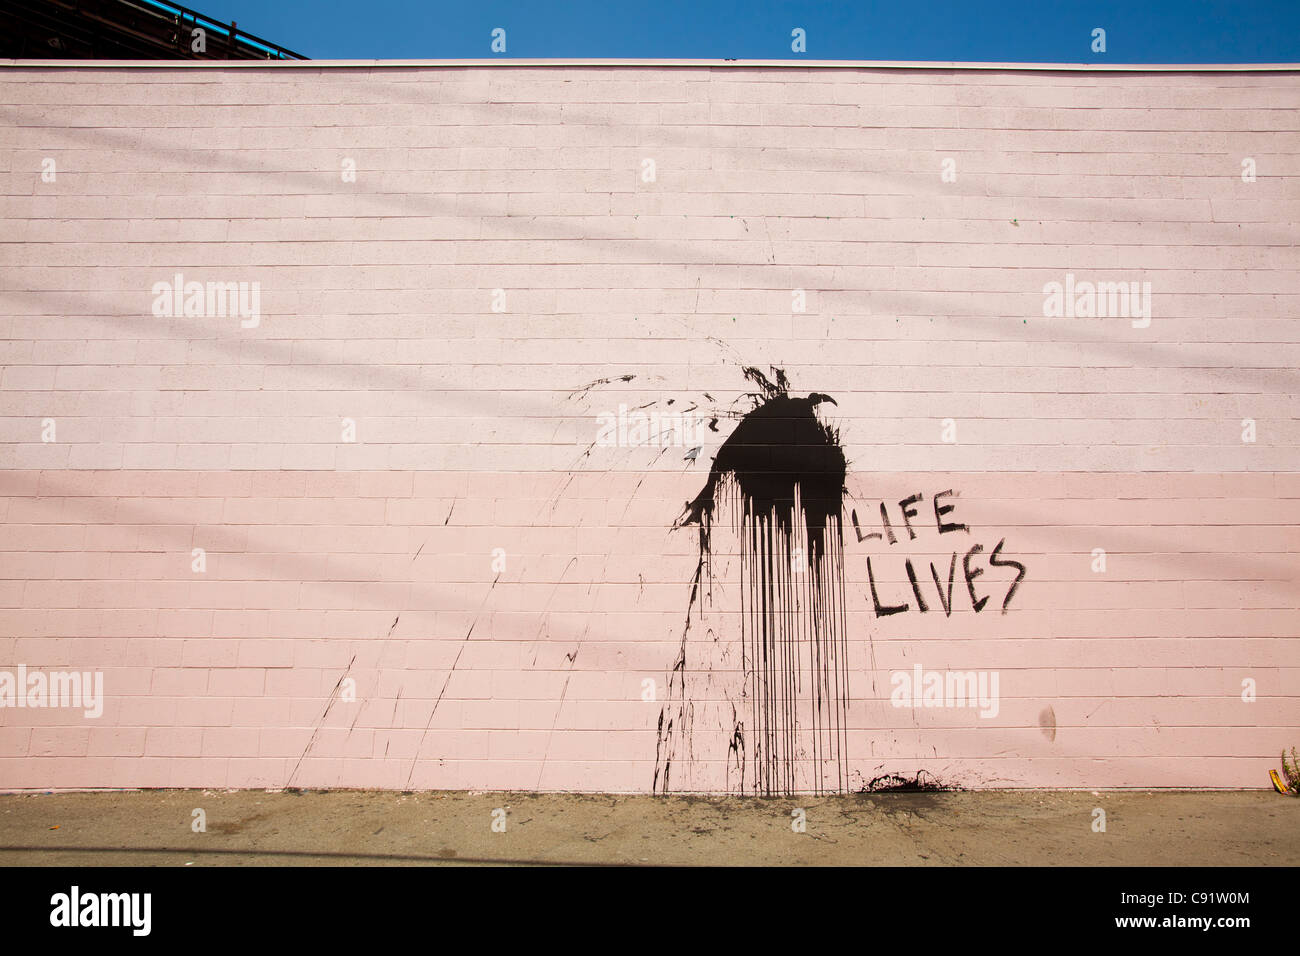 Street Art, Los Angeles, California, United States of America - Stock Image